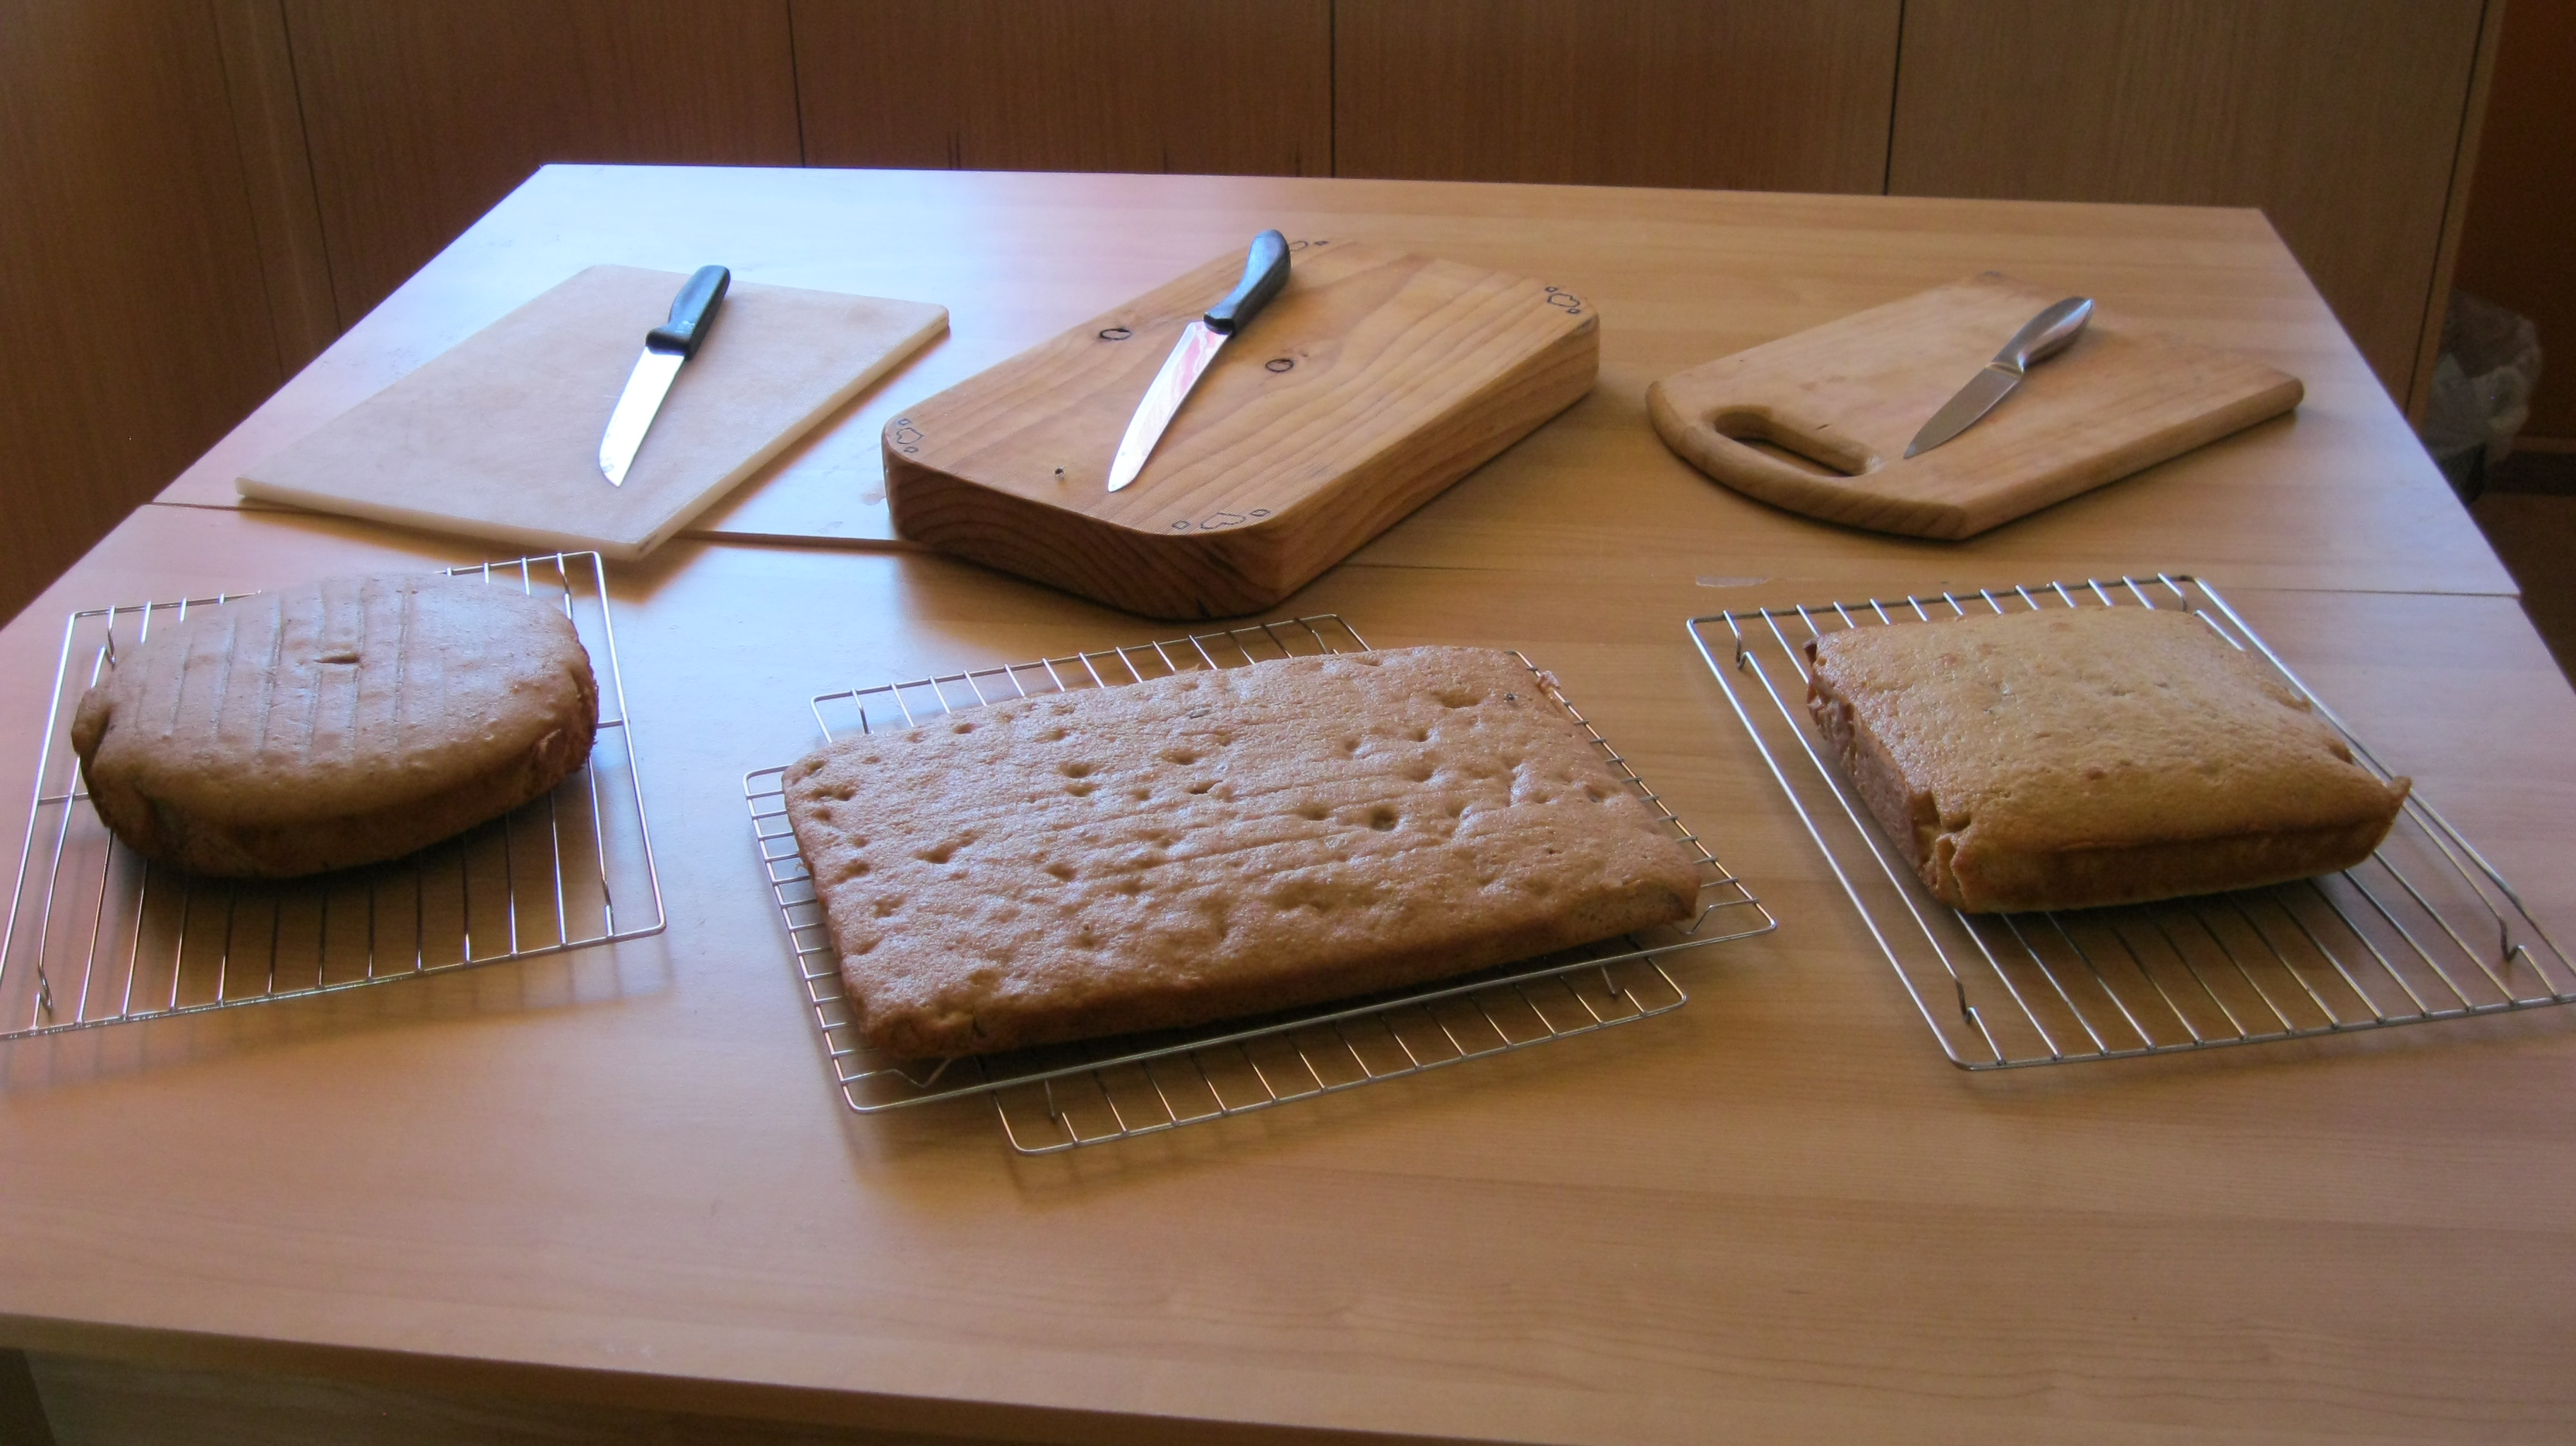 CAKES COOKED - READY FOR FRACTION SLICING